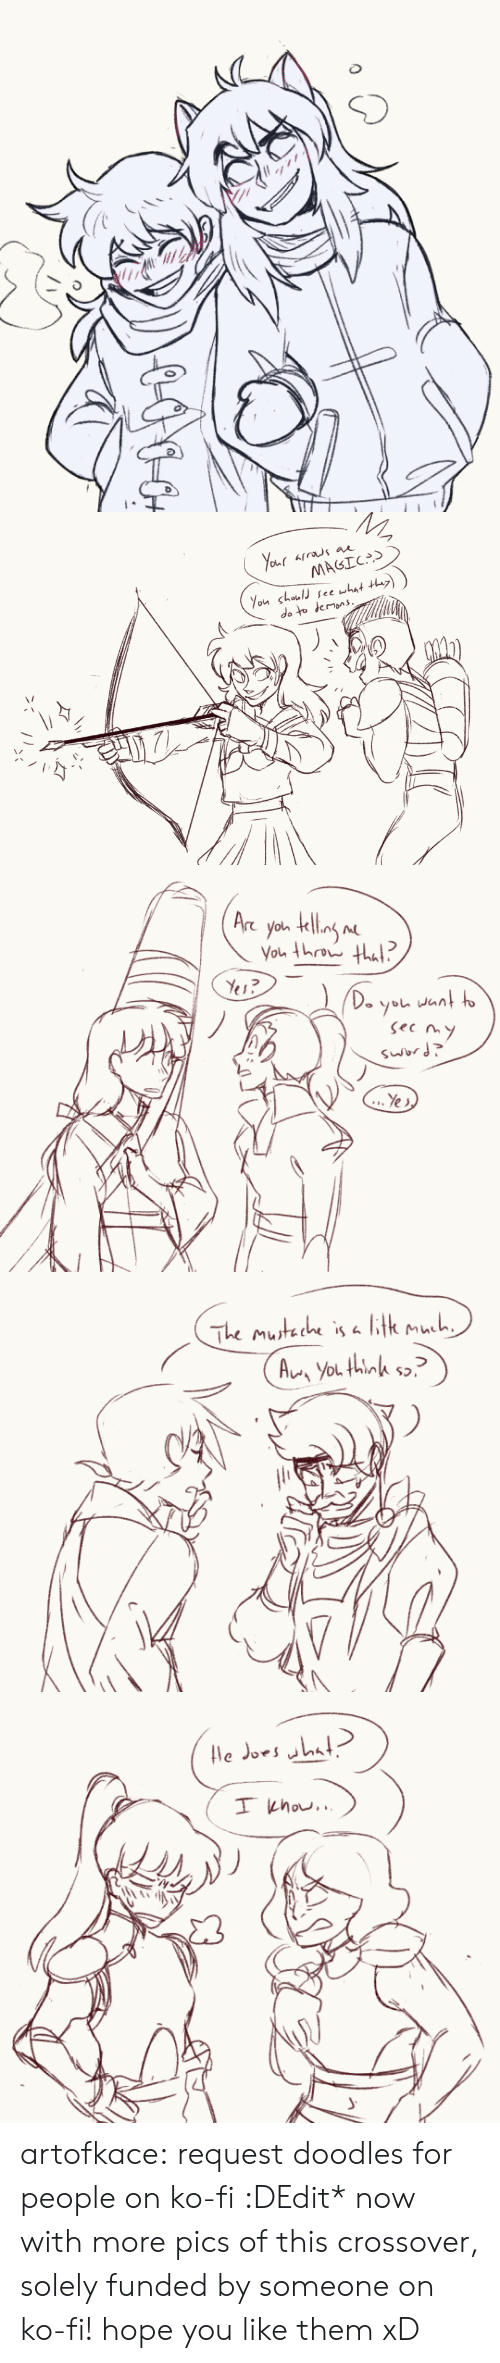 Target, Tumblr, and Blog: Your arras ax  MAGICS  You shoul see what th)  do to demons   Are you telling m  You throw that  D. want to  you  sec my  sword  ..Ye s   The Musteche is a i{k much  Au You thinkh s   le Jors hat artofkace:  request doodles for people on ko-fi :DEdit* now with more pics of this crossover, solely funded by someone on ko-fi! hope you like them xD